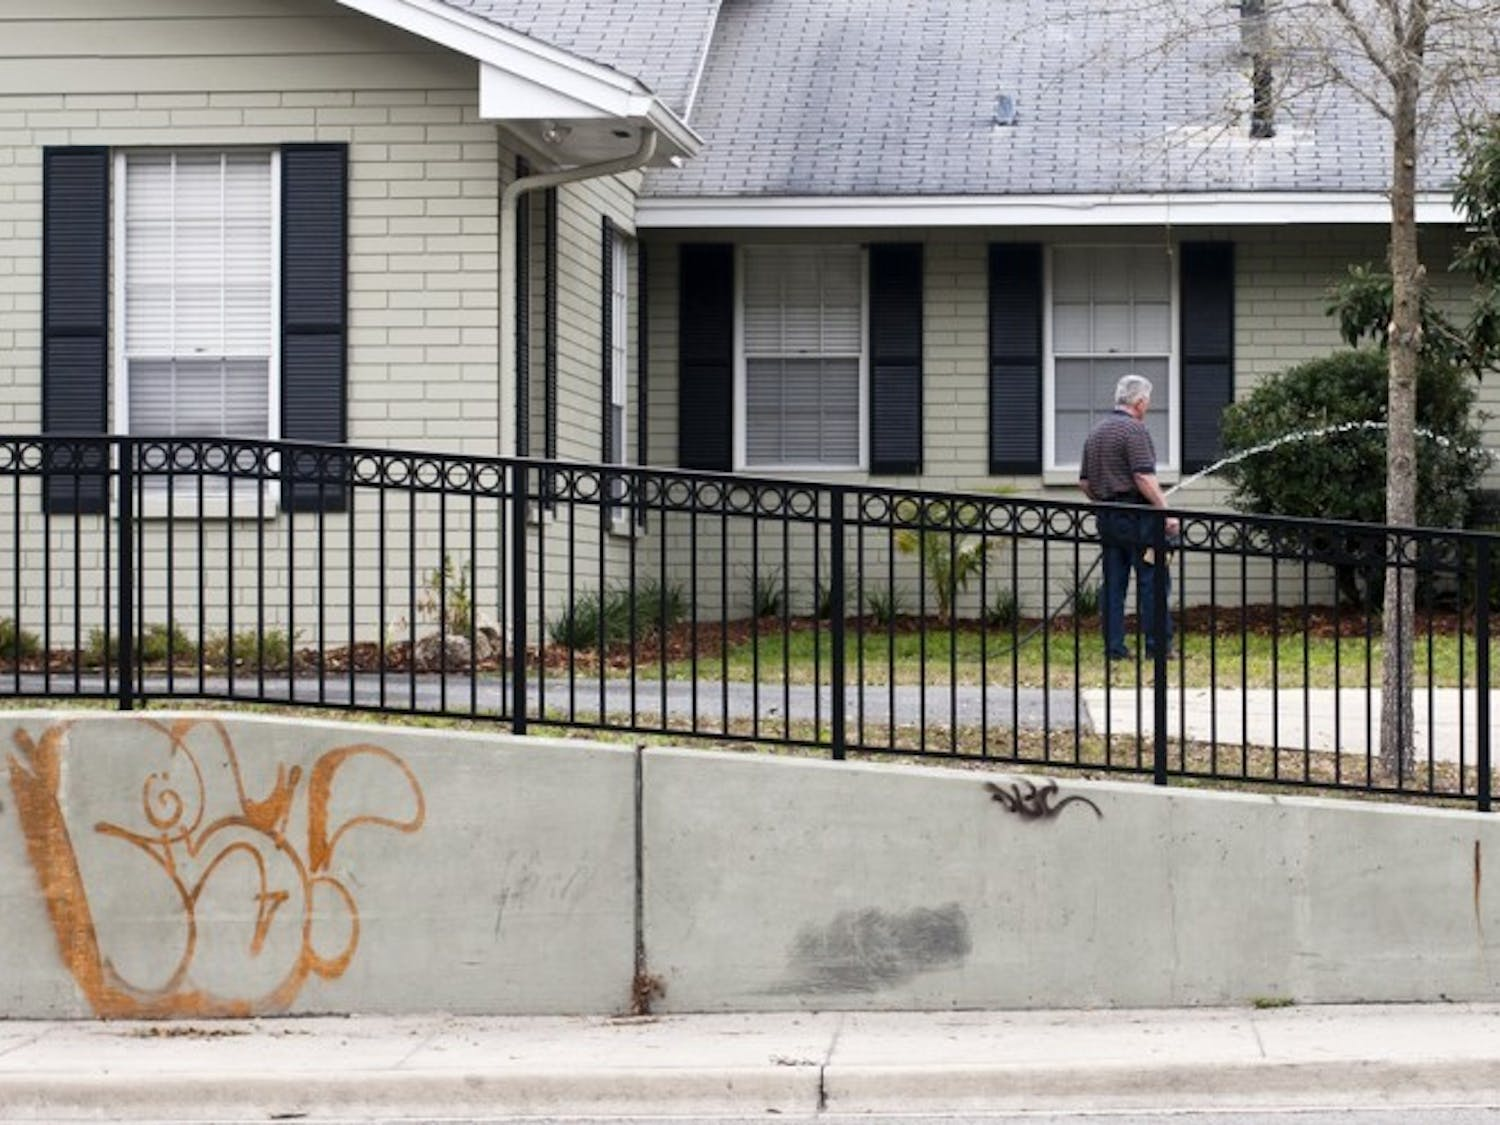 Graffiti covers the wall in front of a house on University Avenue on Thursday. In response to increased amounts of graffiti, spokesman Bob Woods said the city has developed a campaign to raise public awareness toward the issue and minimize the unwelcome marks. The campaign will be unrolled this month.